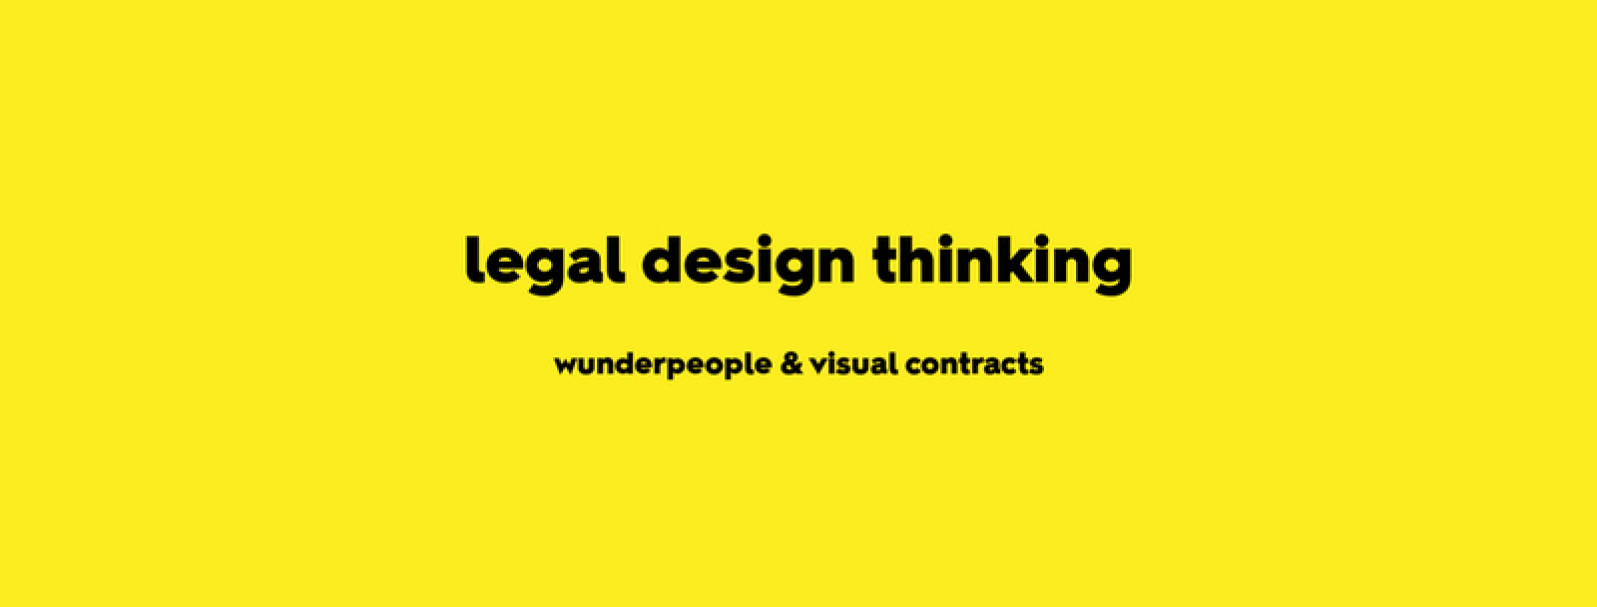 Legal Design Thinking network